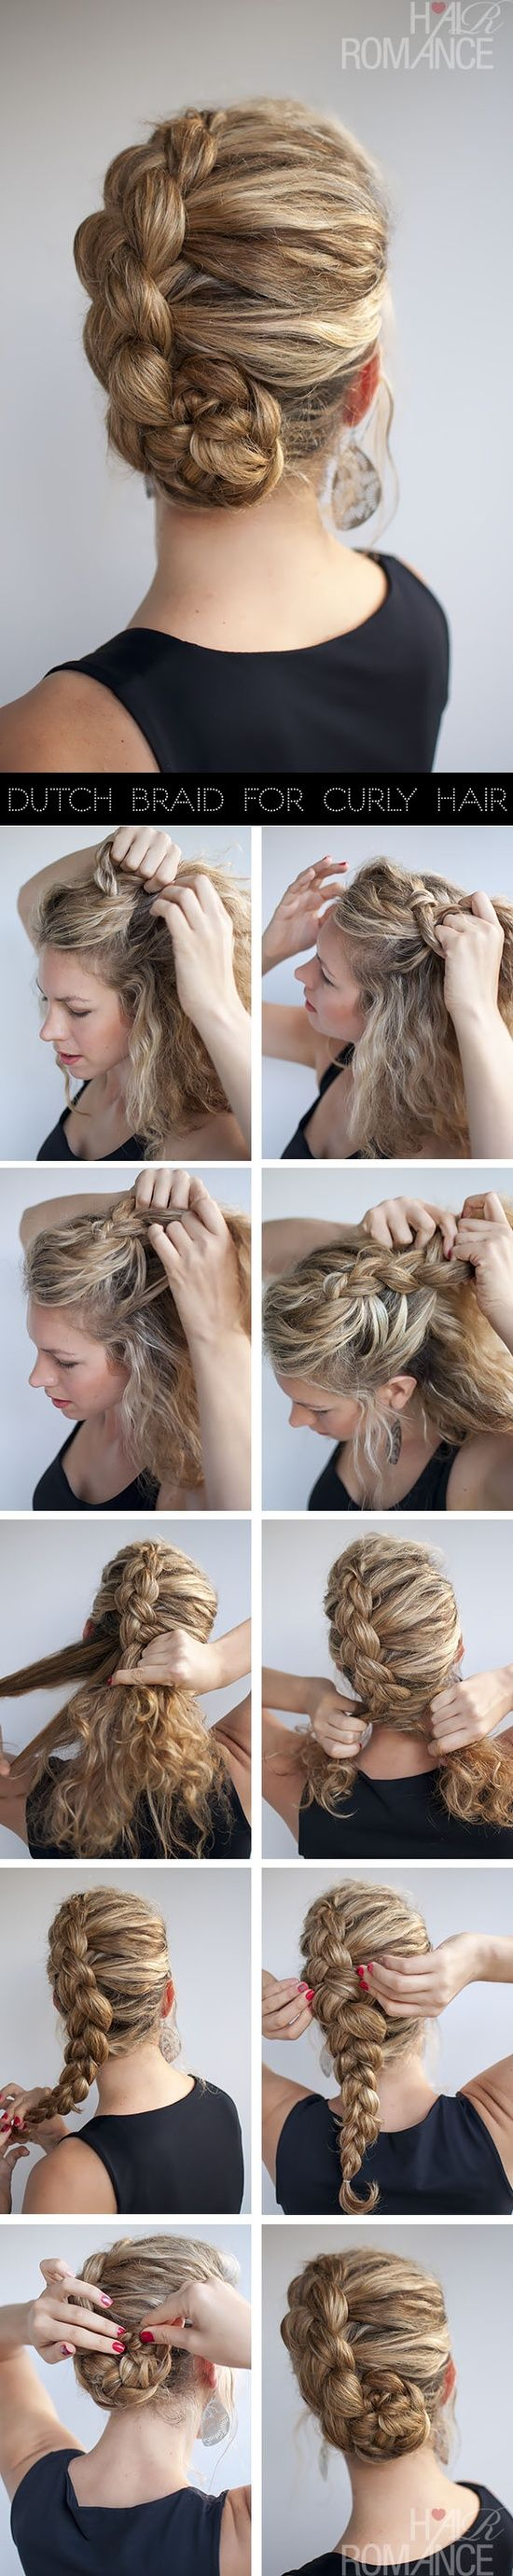 'Dutch Braided updo tutorial - nice idea for a holiday or special event'